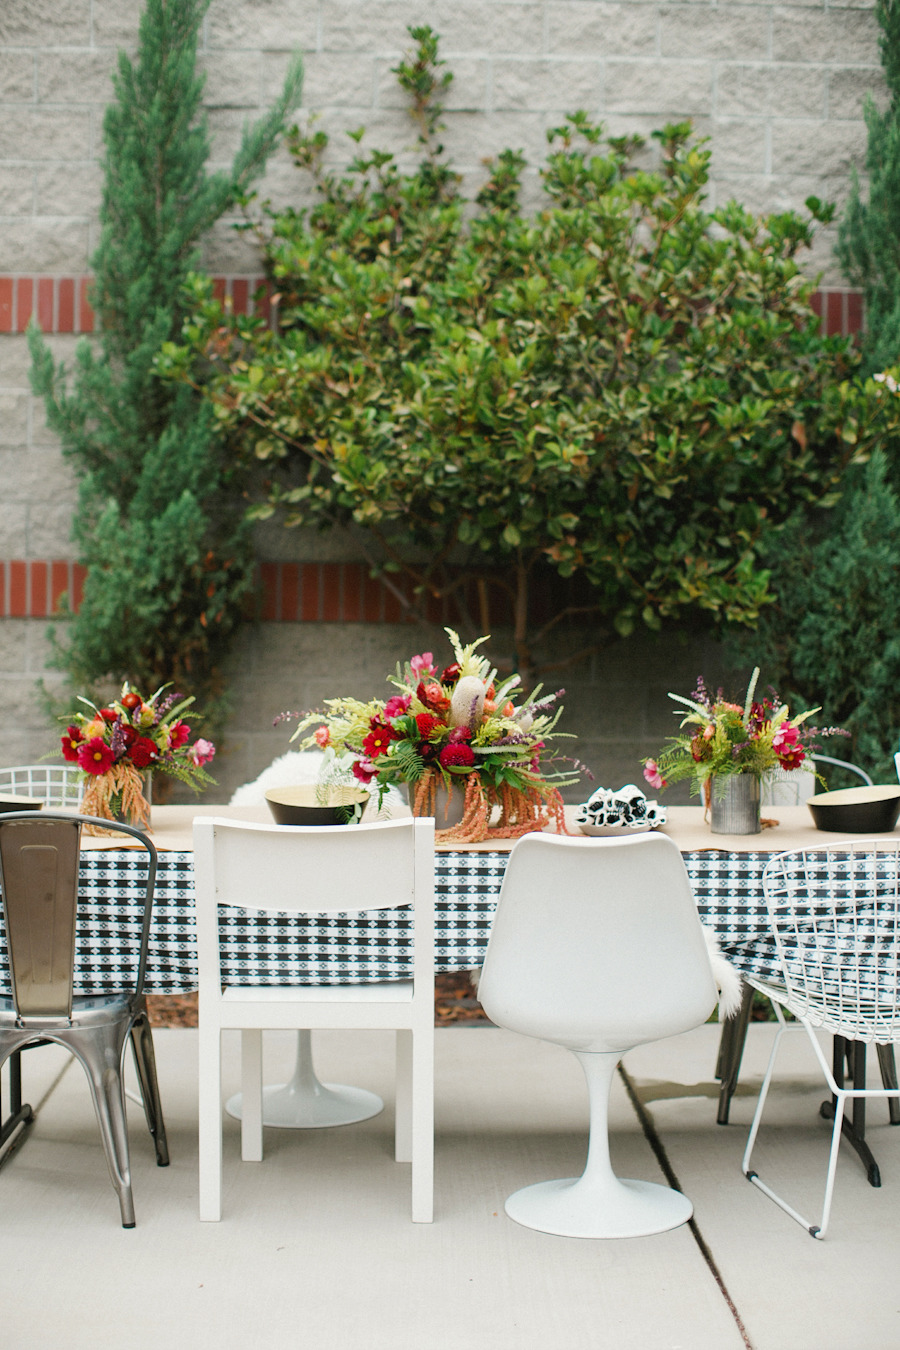 50 outdoor party ideas you should try out this summer for Small outdoor table ideas